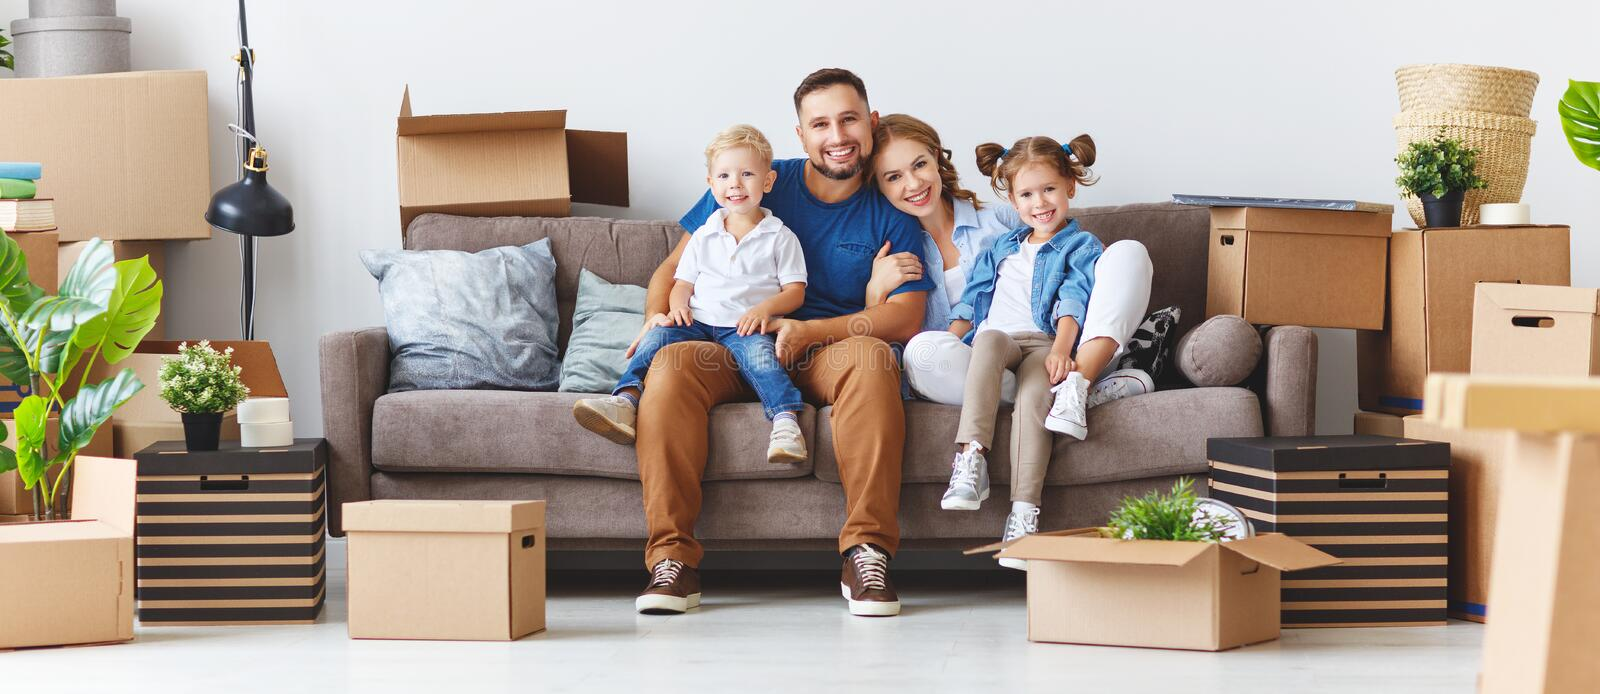 Happy family mother father and children move to new apartment an. Happy family mother father and children move to a new apartment and unpack boxes royalty free stock image